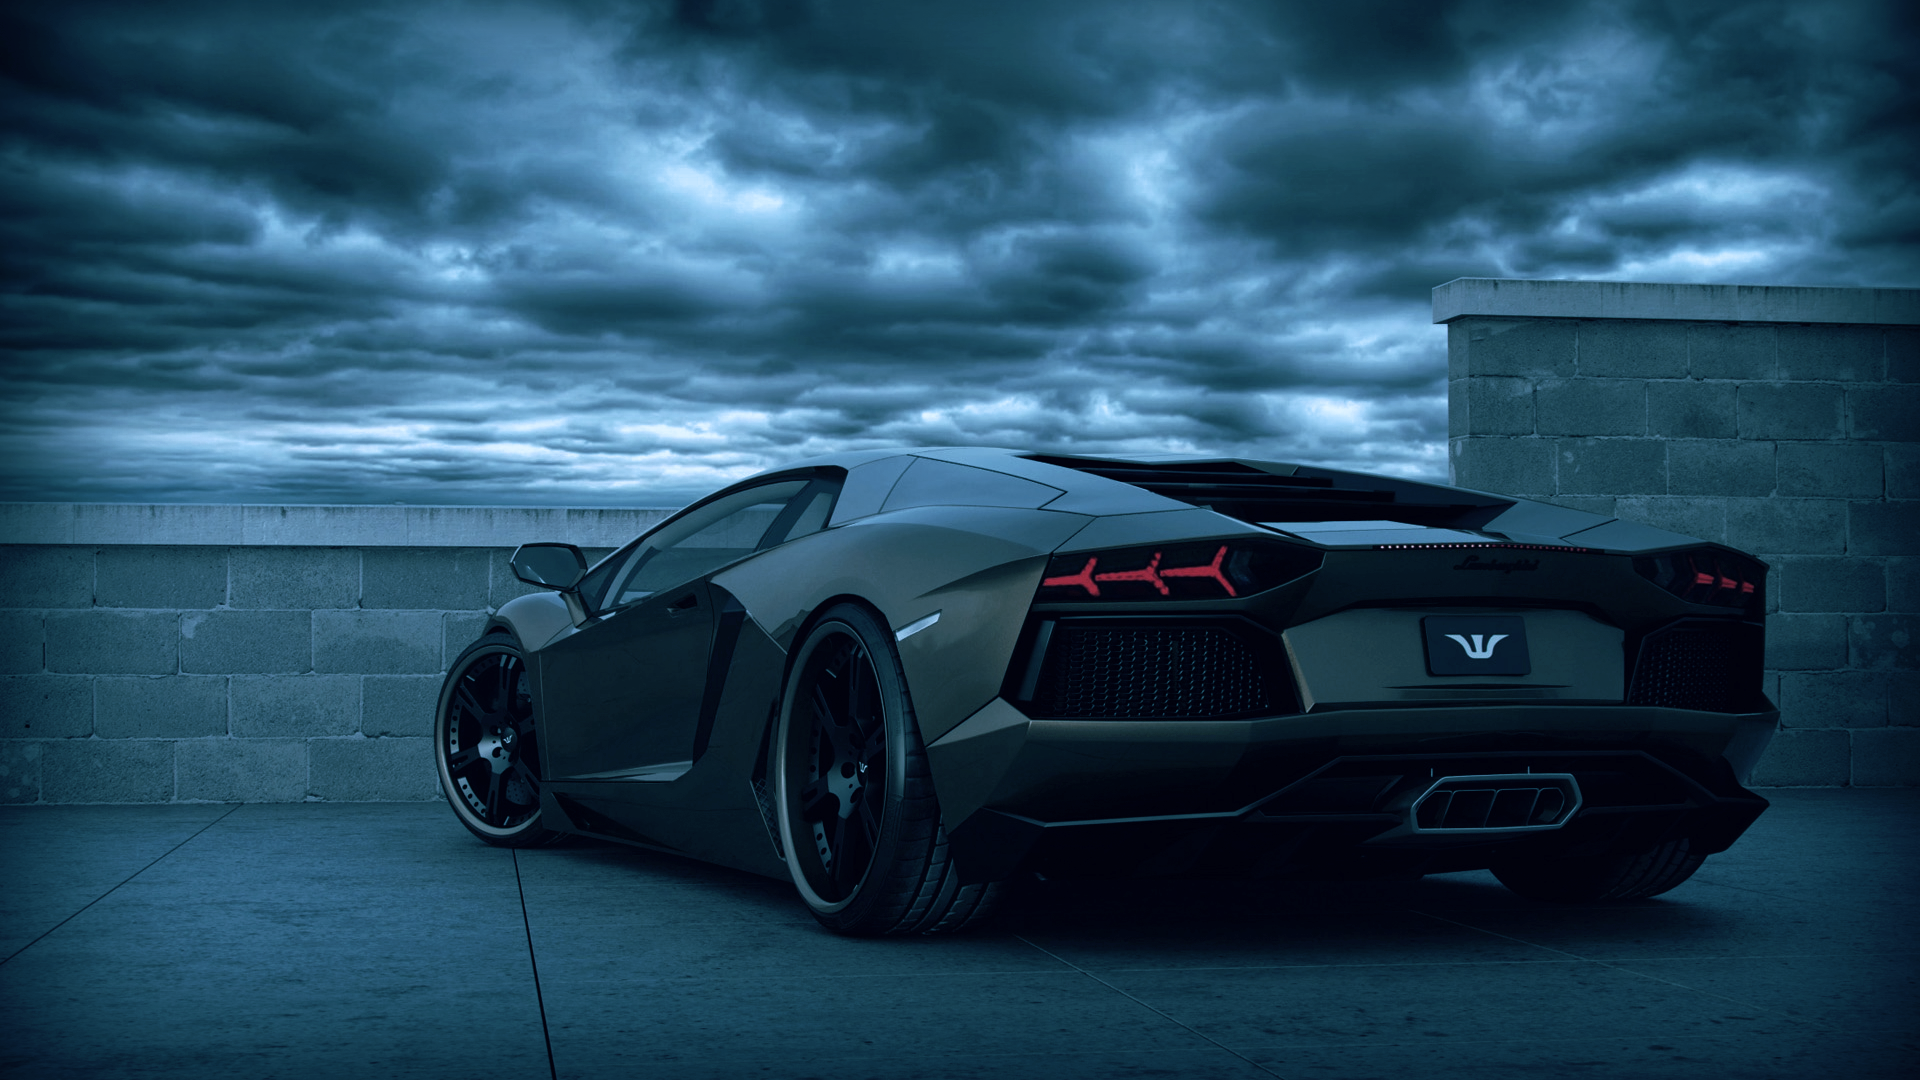 1360x768 Lamborghini Aventador Laptop Hd Hd 4k Wallpapers Images